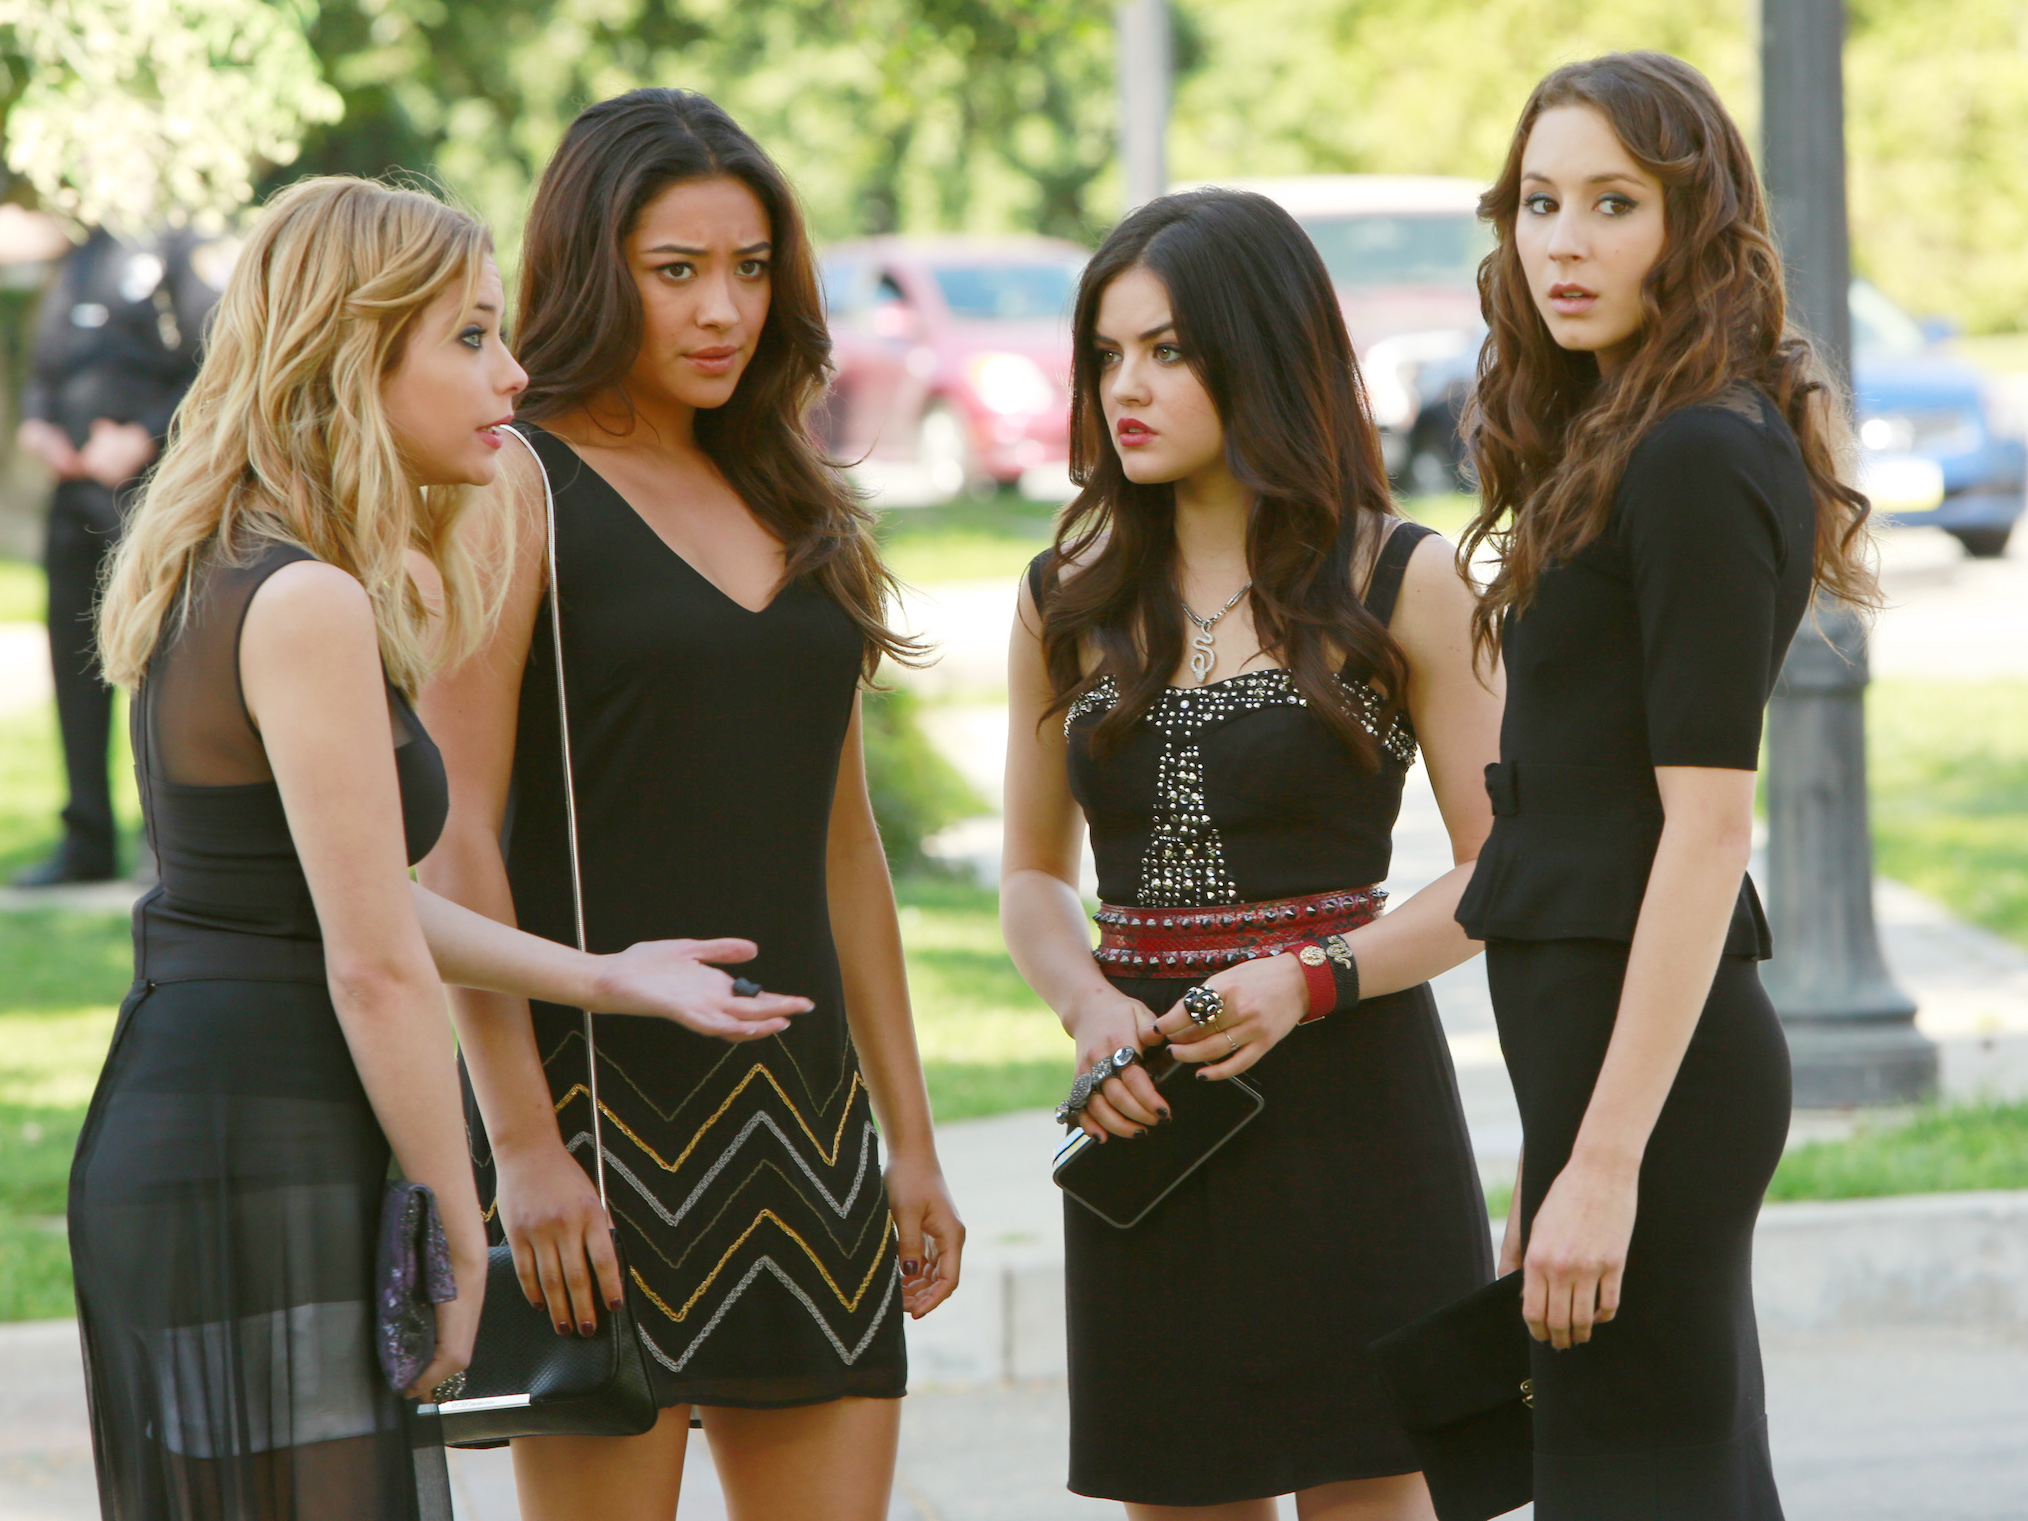 Pretty Little Liars 10th Anniversary Iconic Moments